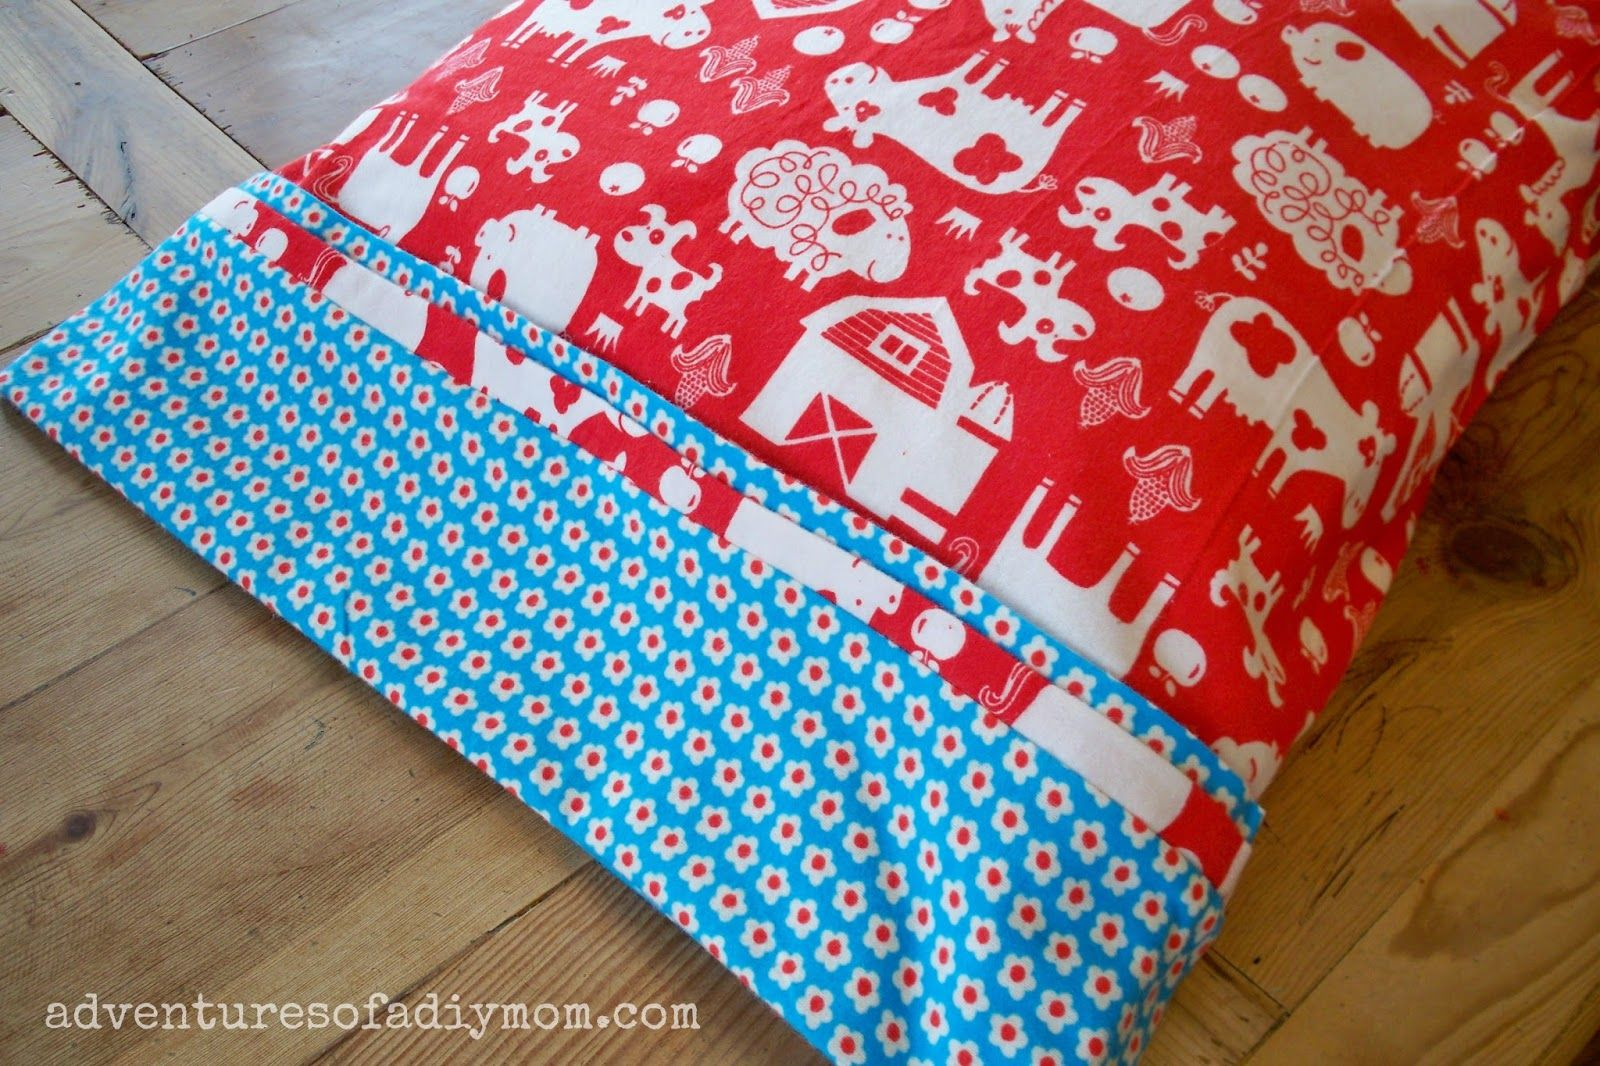 Making Pillowcases Fair How To Make An Easy Rolled Pillowcase With Only 3 Seams  Easy Design Inspiration